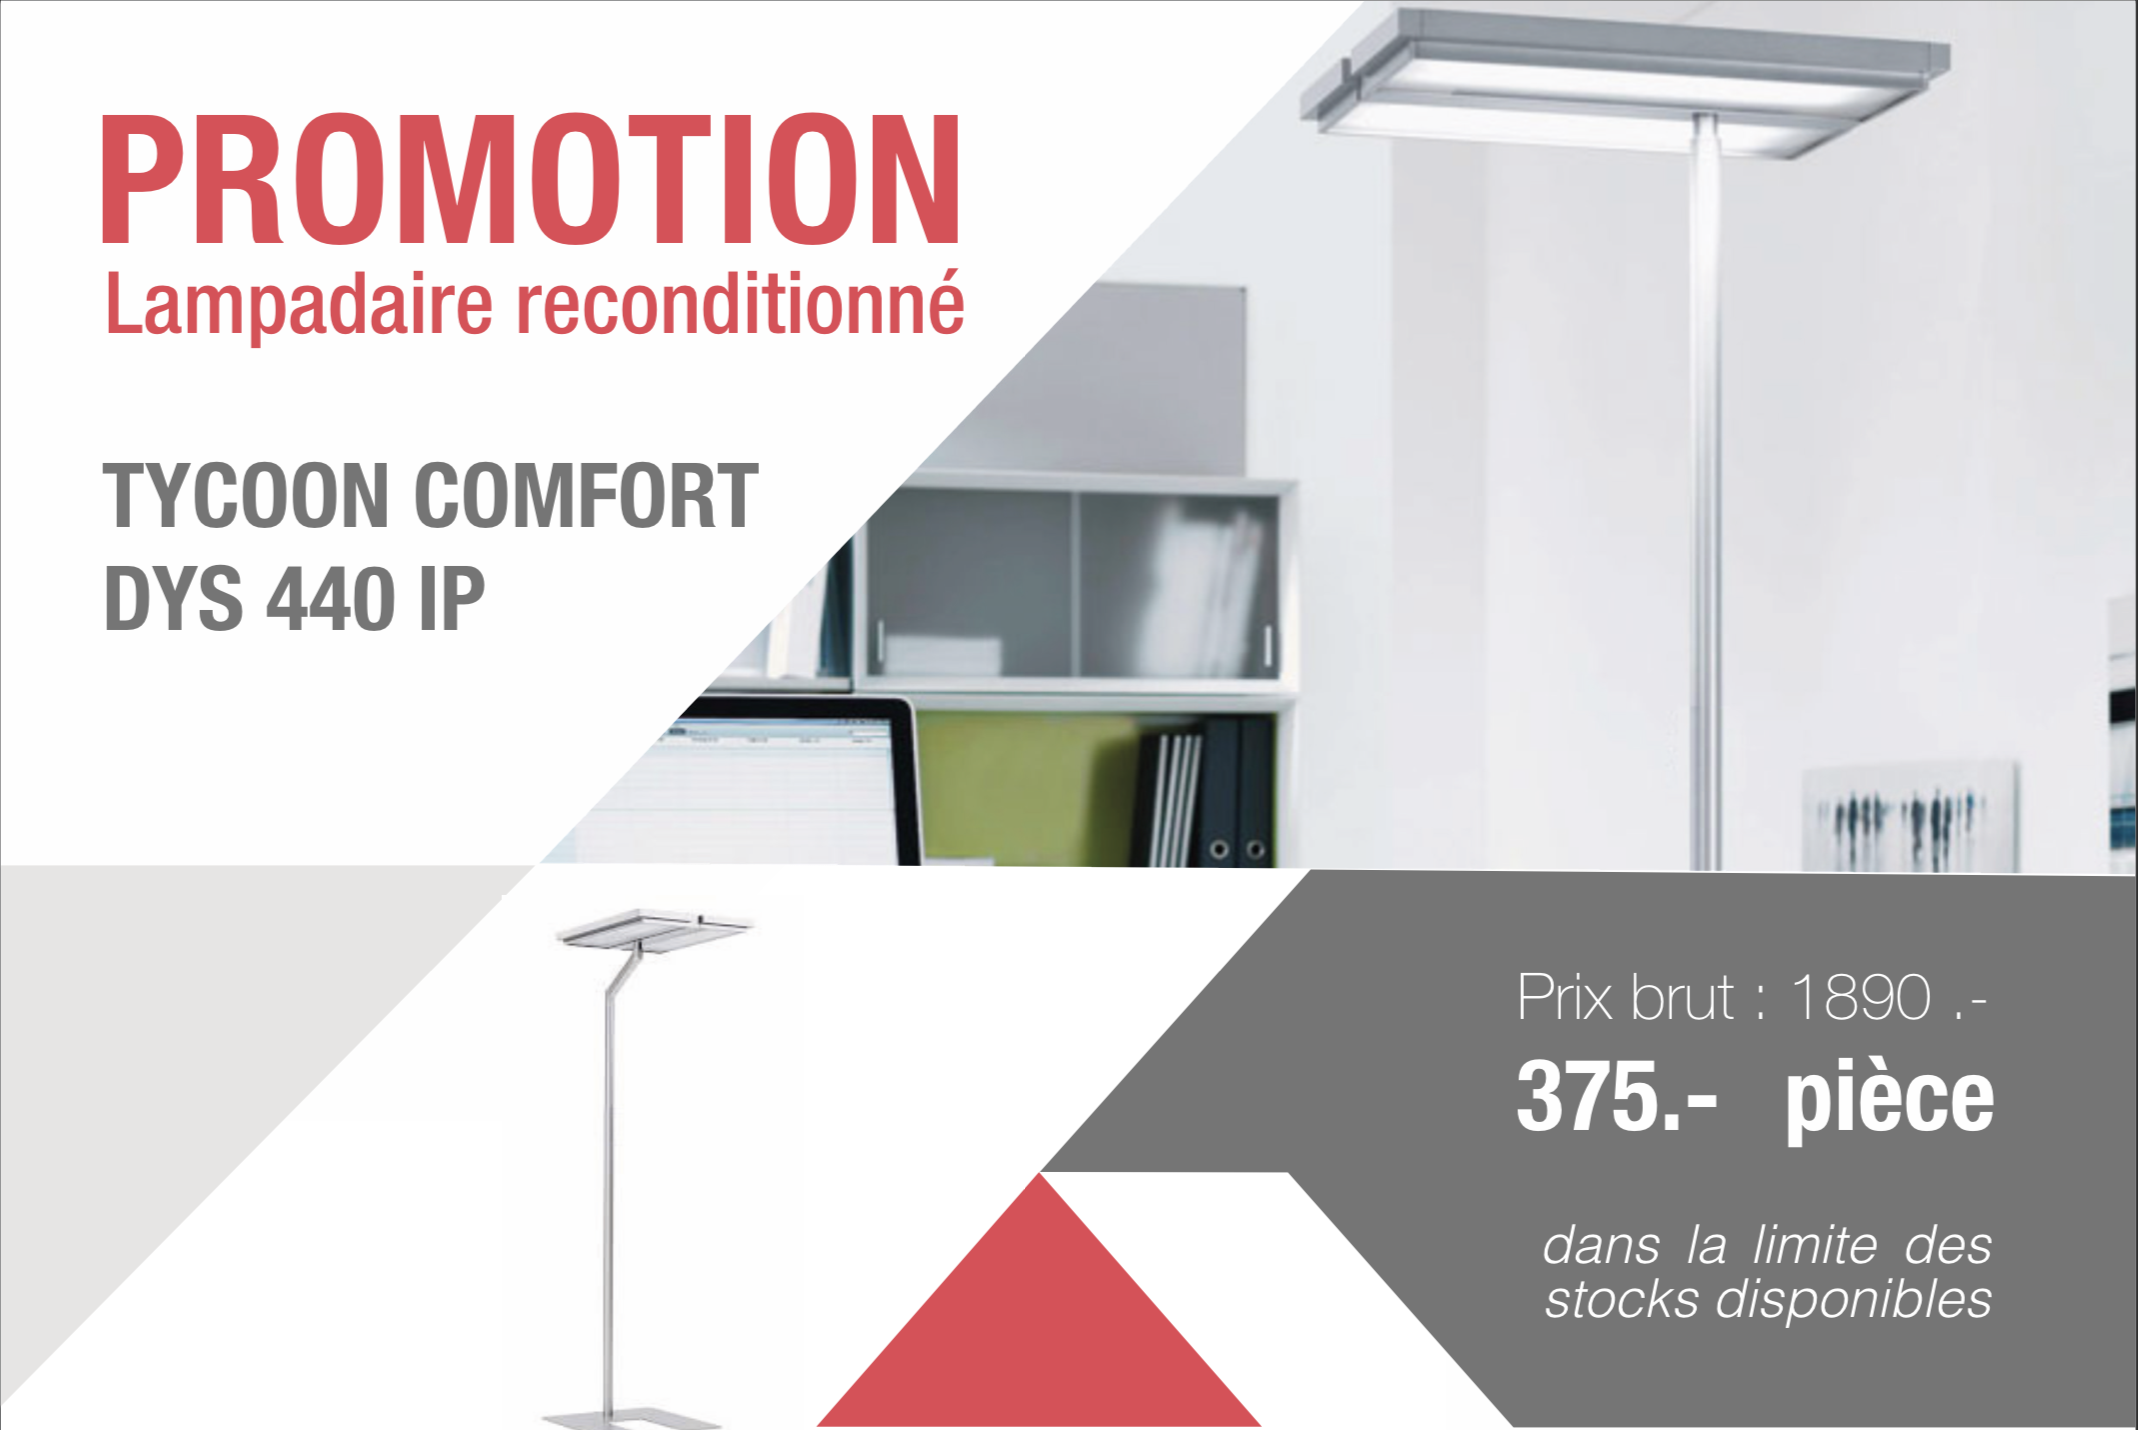 Lampadaire reconditionné Tycoon Comfort dys 440 ip